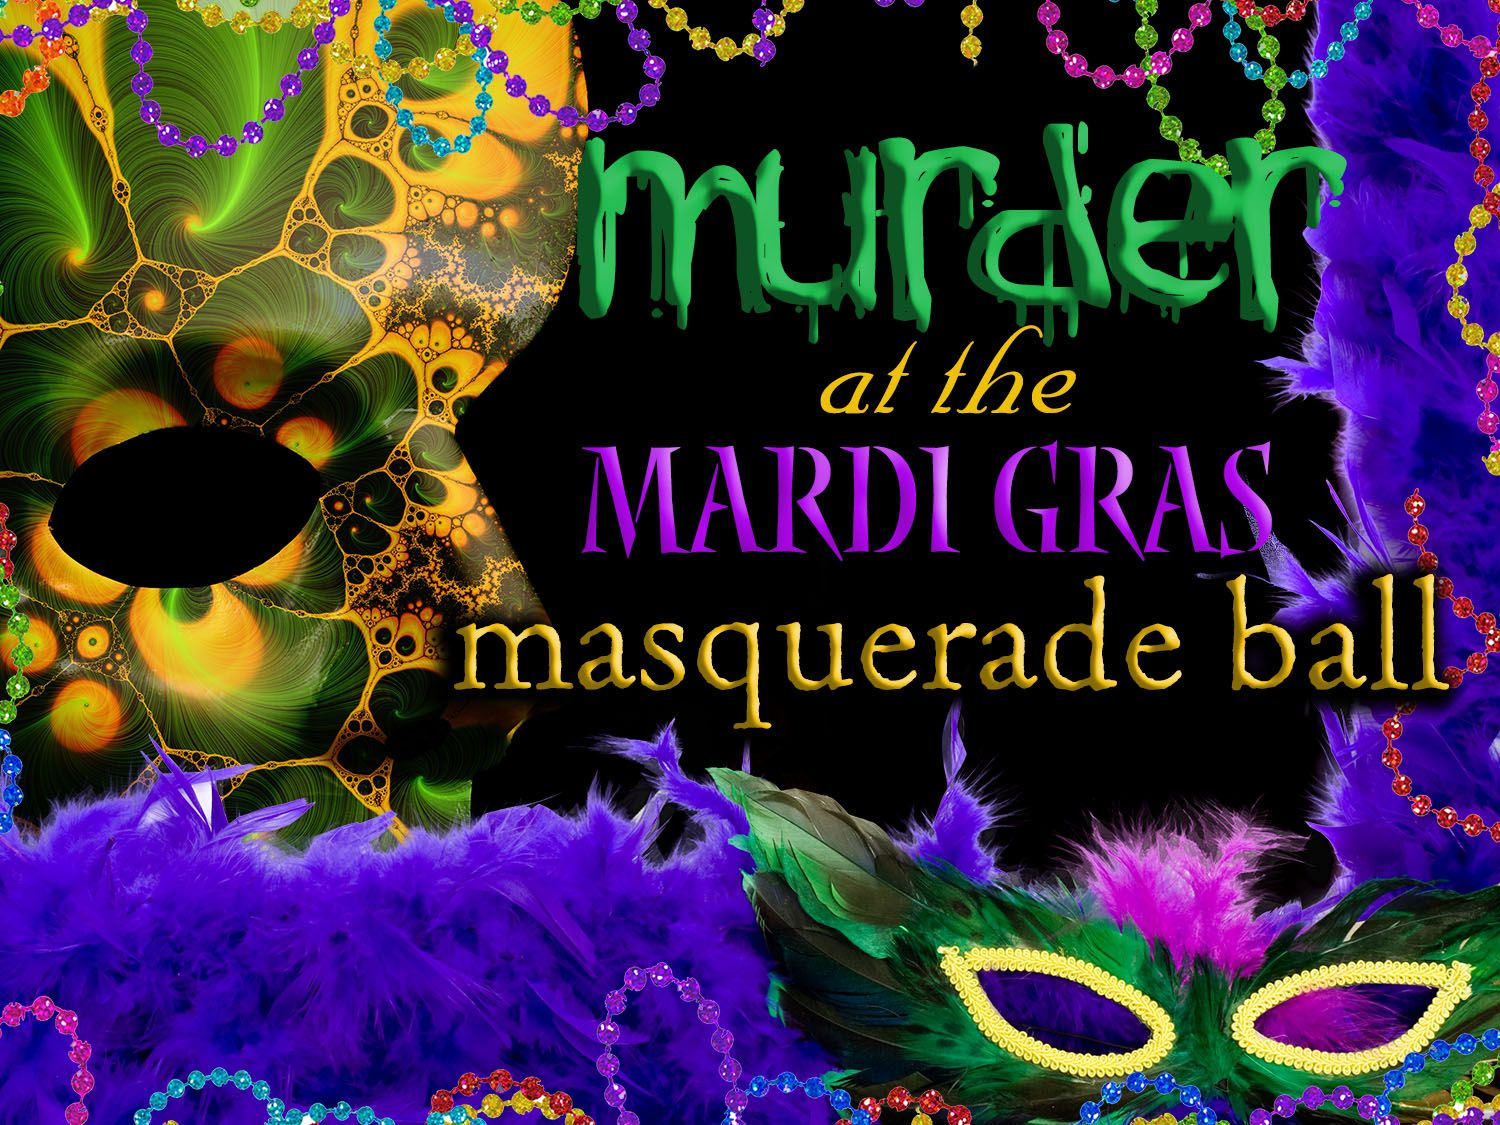 Murder at the Mardi Gras Masquerade Ball - Instant Download  - New game!